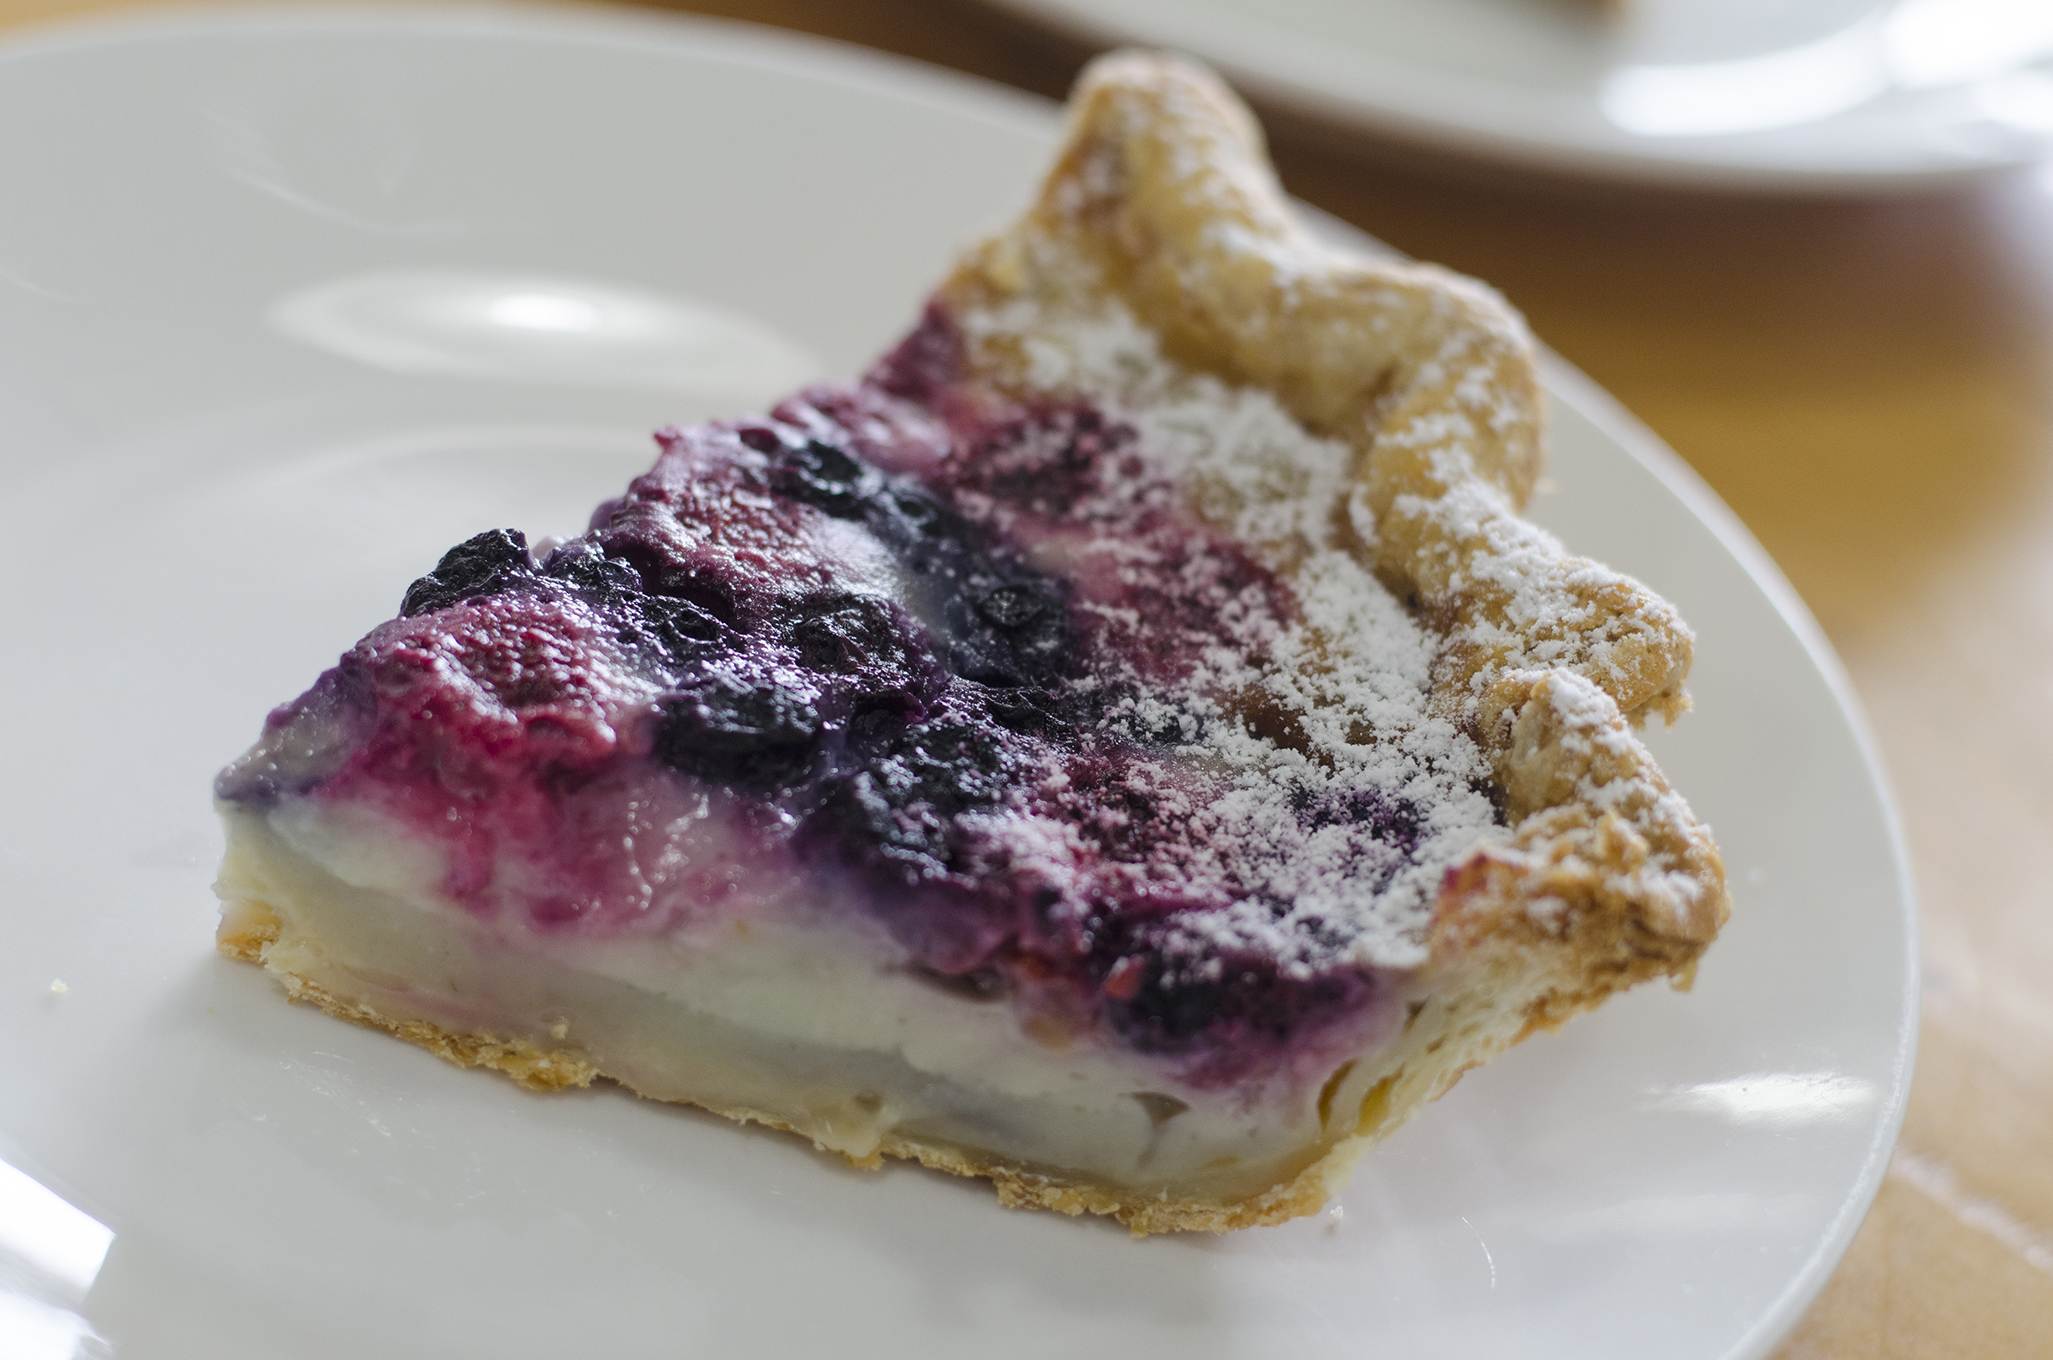 Mixed Berry Clafoutis from Riverside Pie Cafe in Windsor, Ontario.